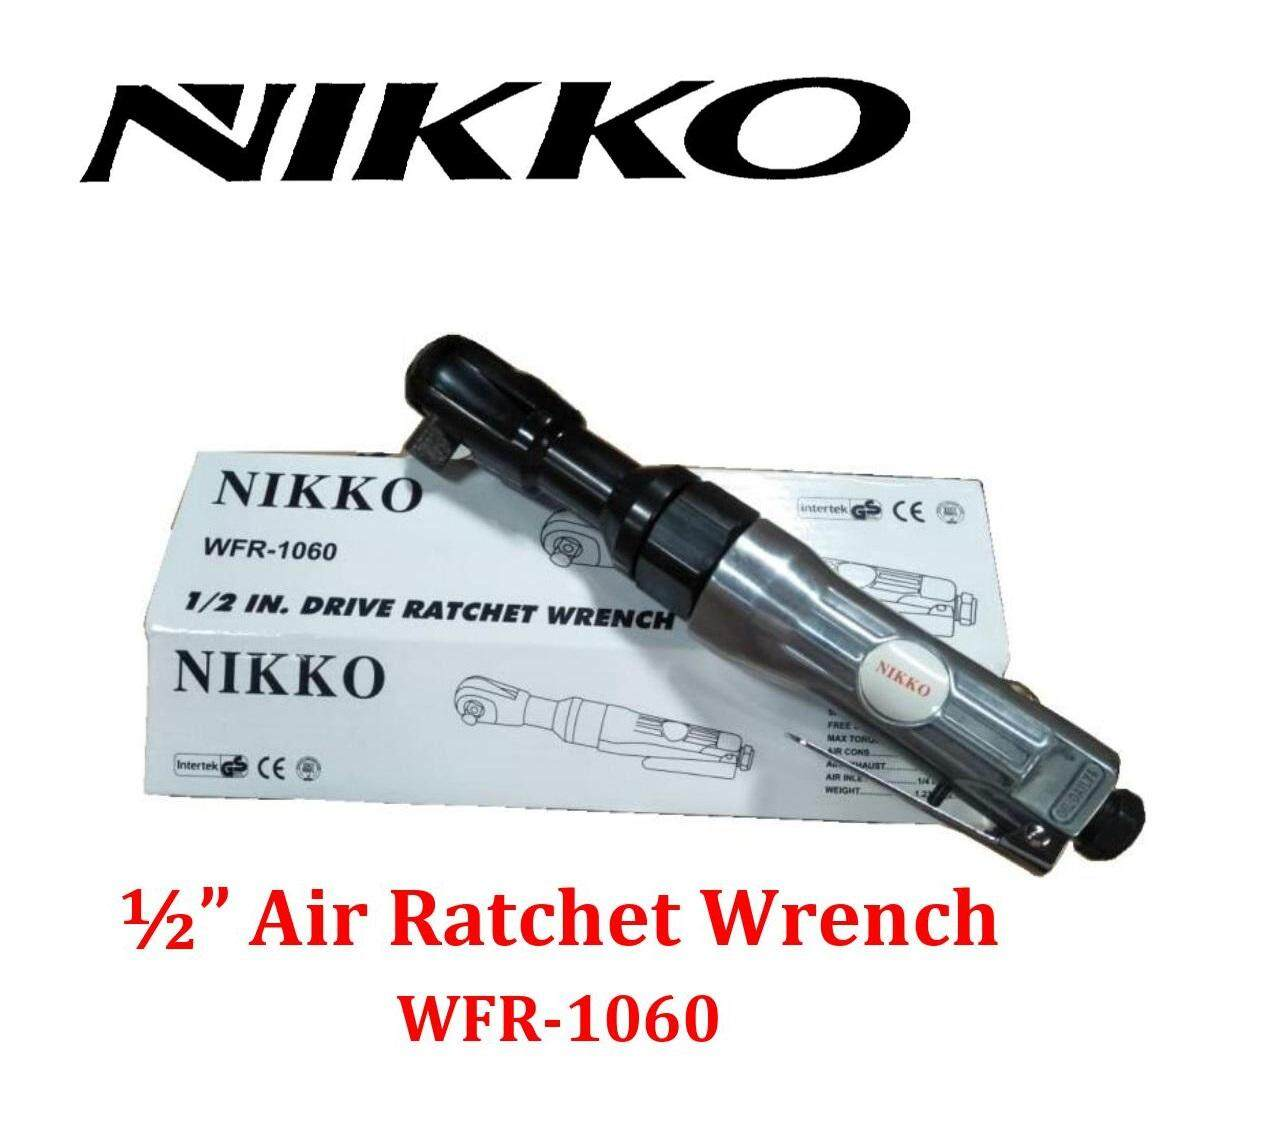 Nikko 1/2 Drive Air Ratchet Wrench